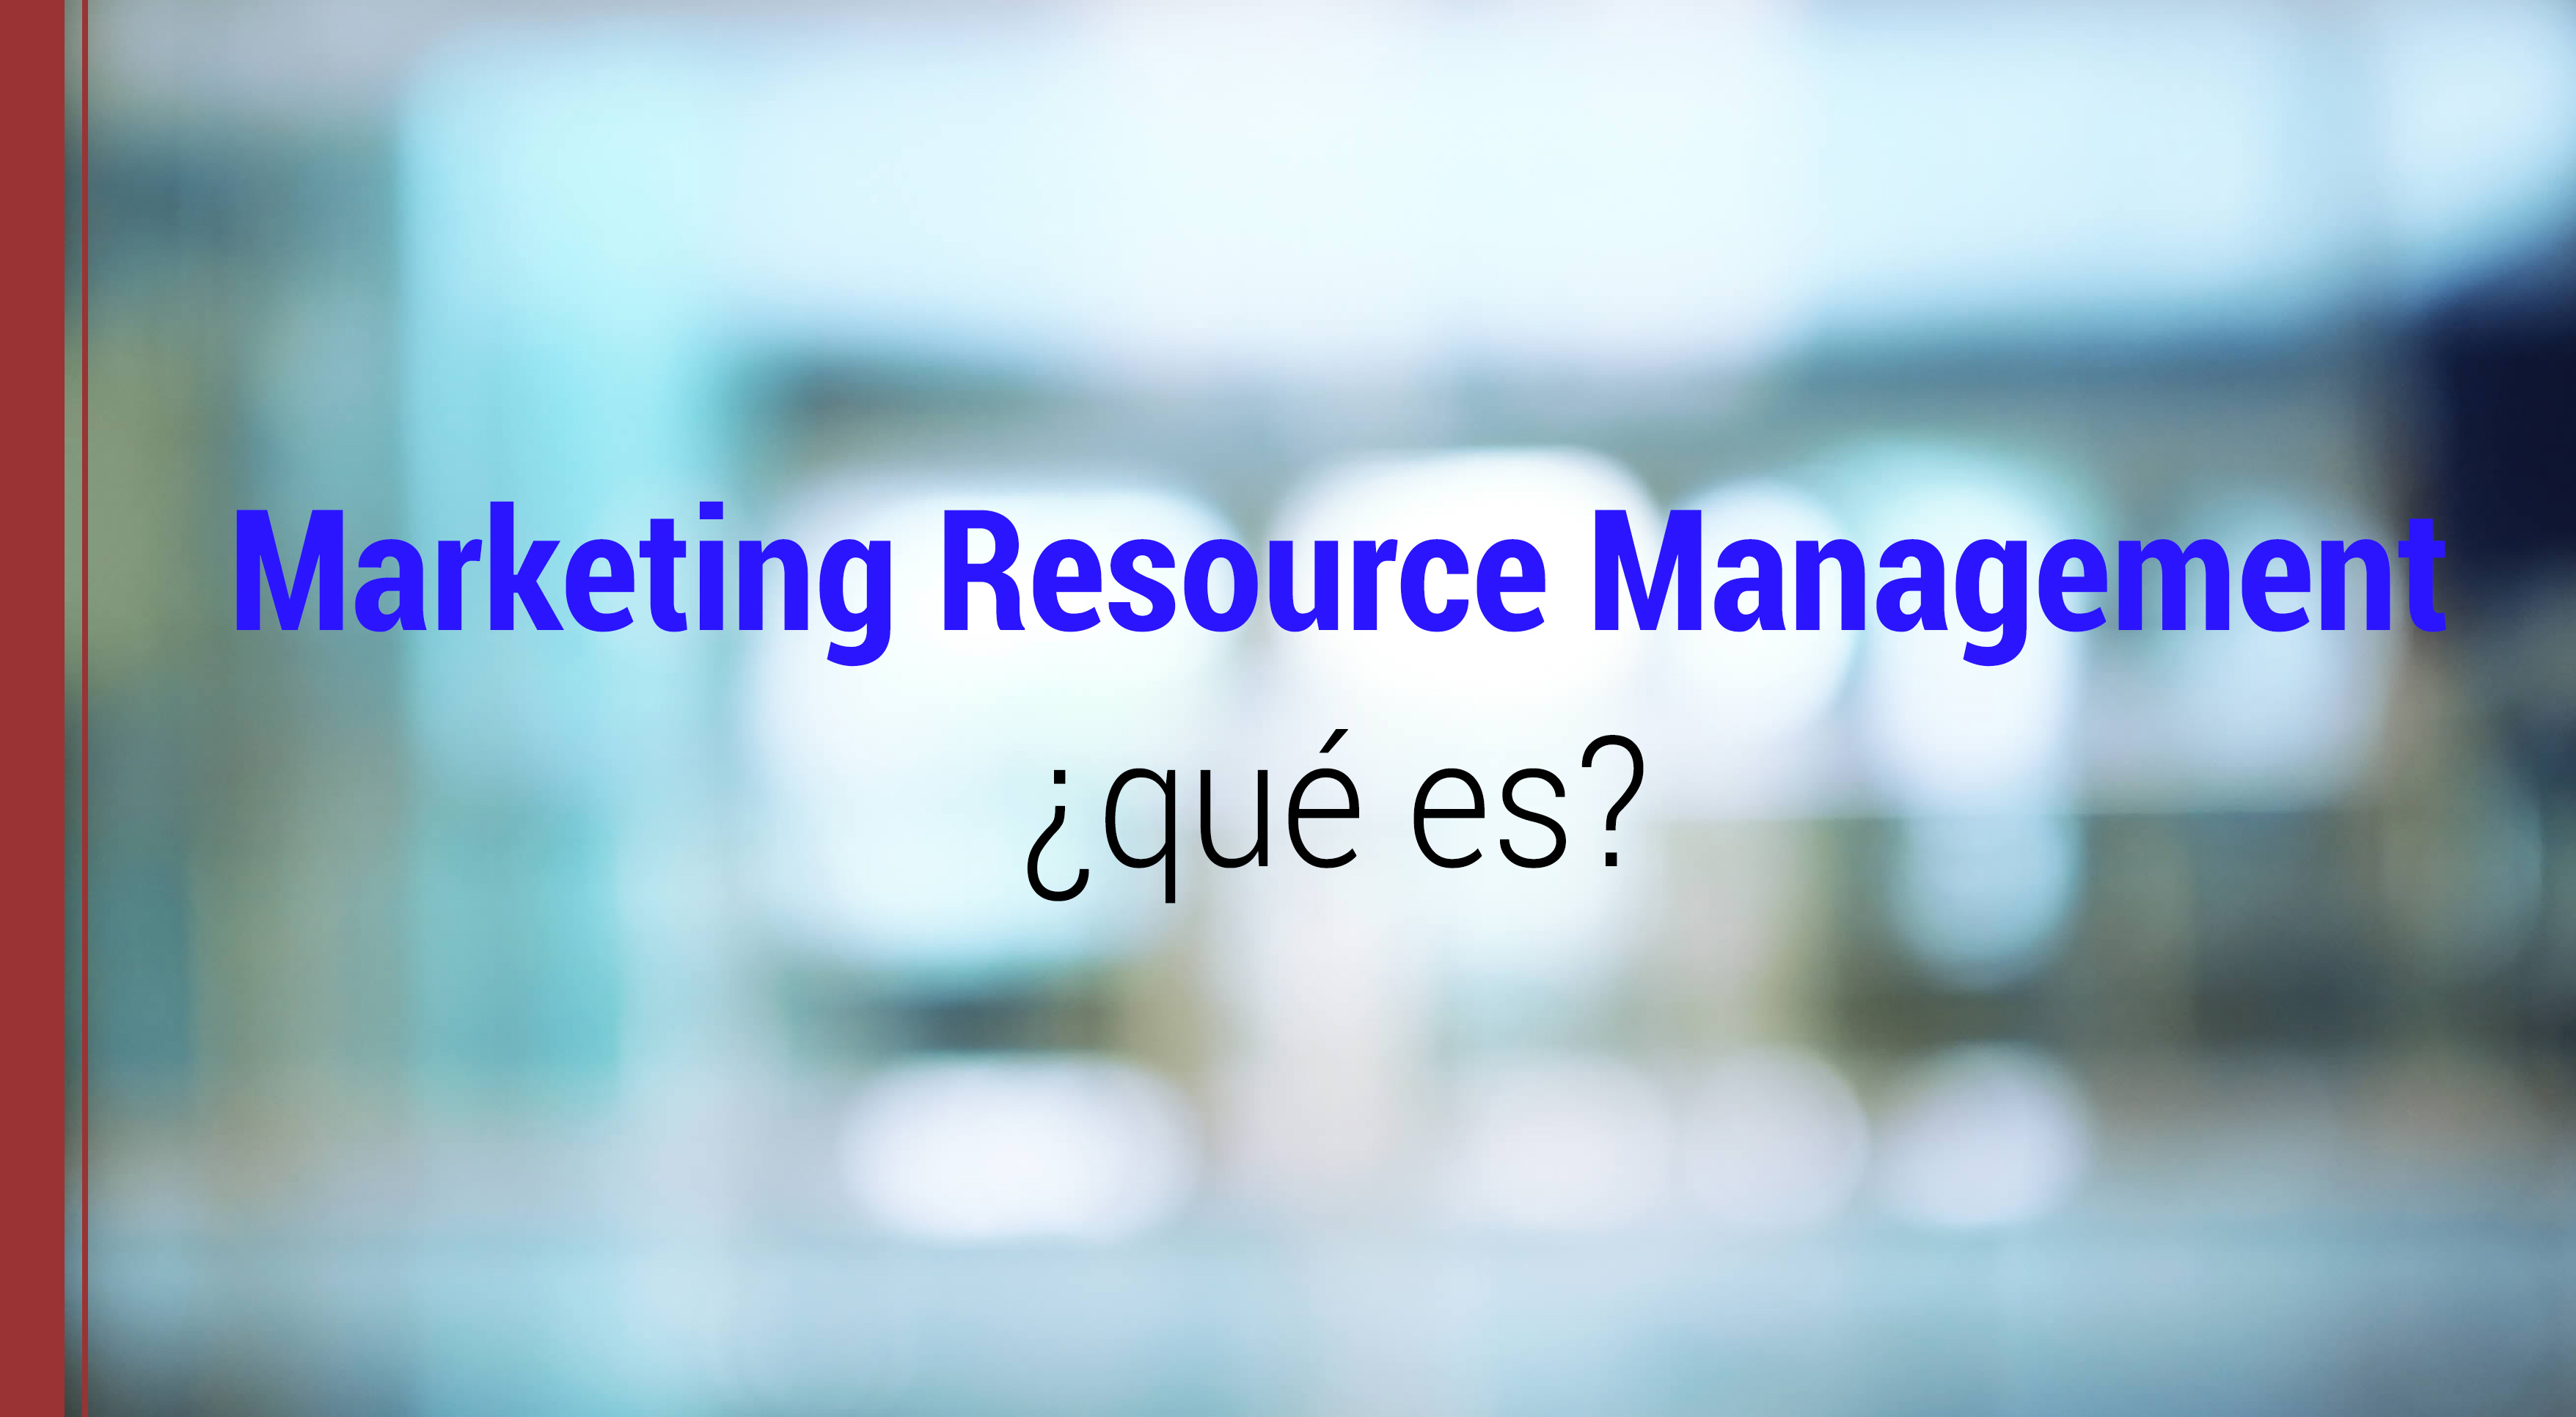 que es el marketing resource management